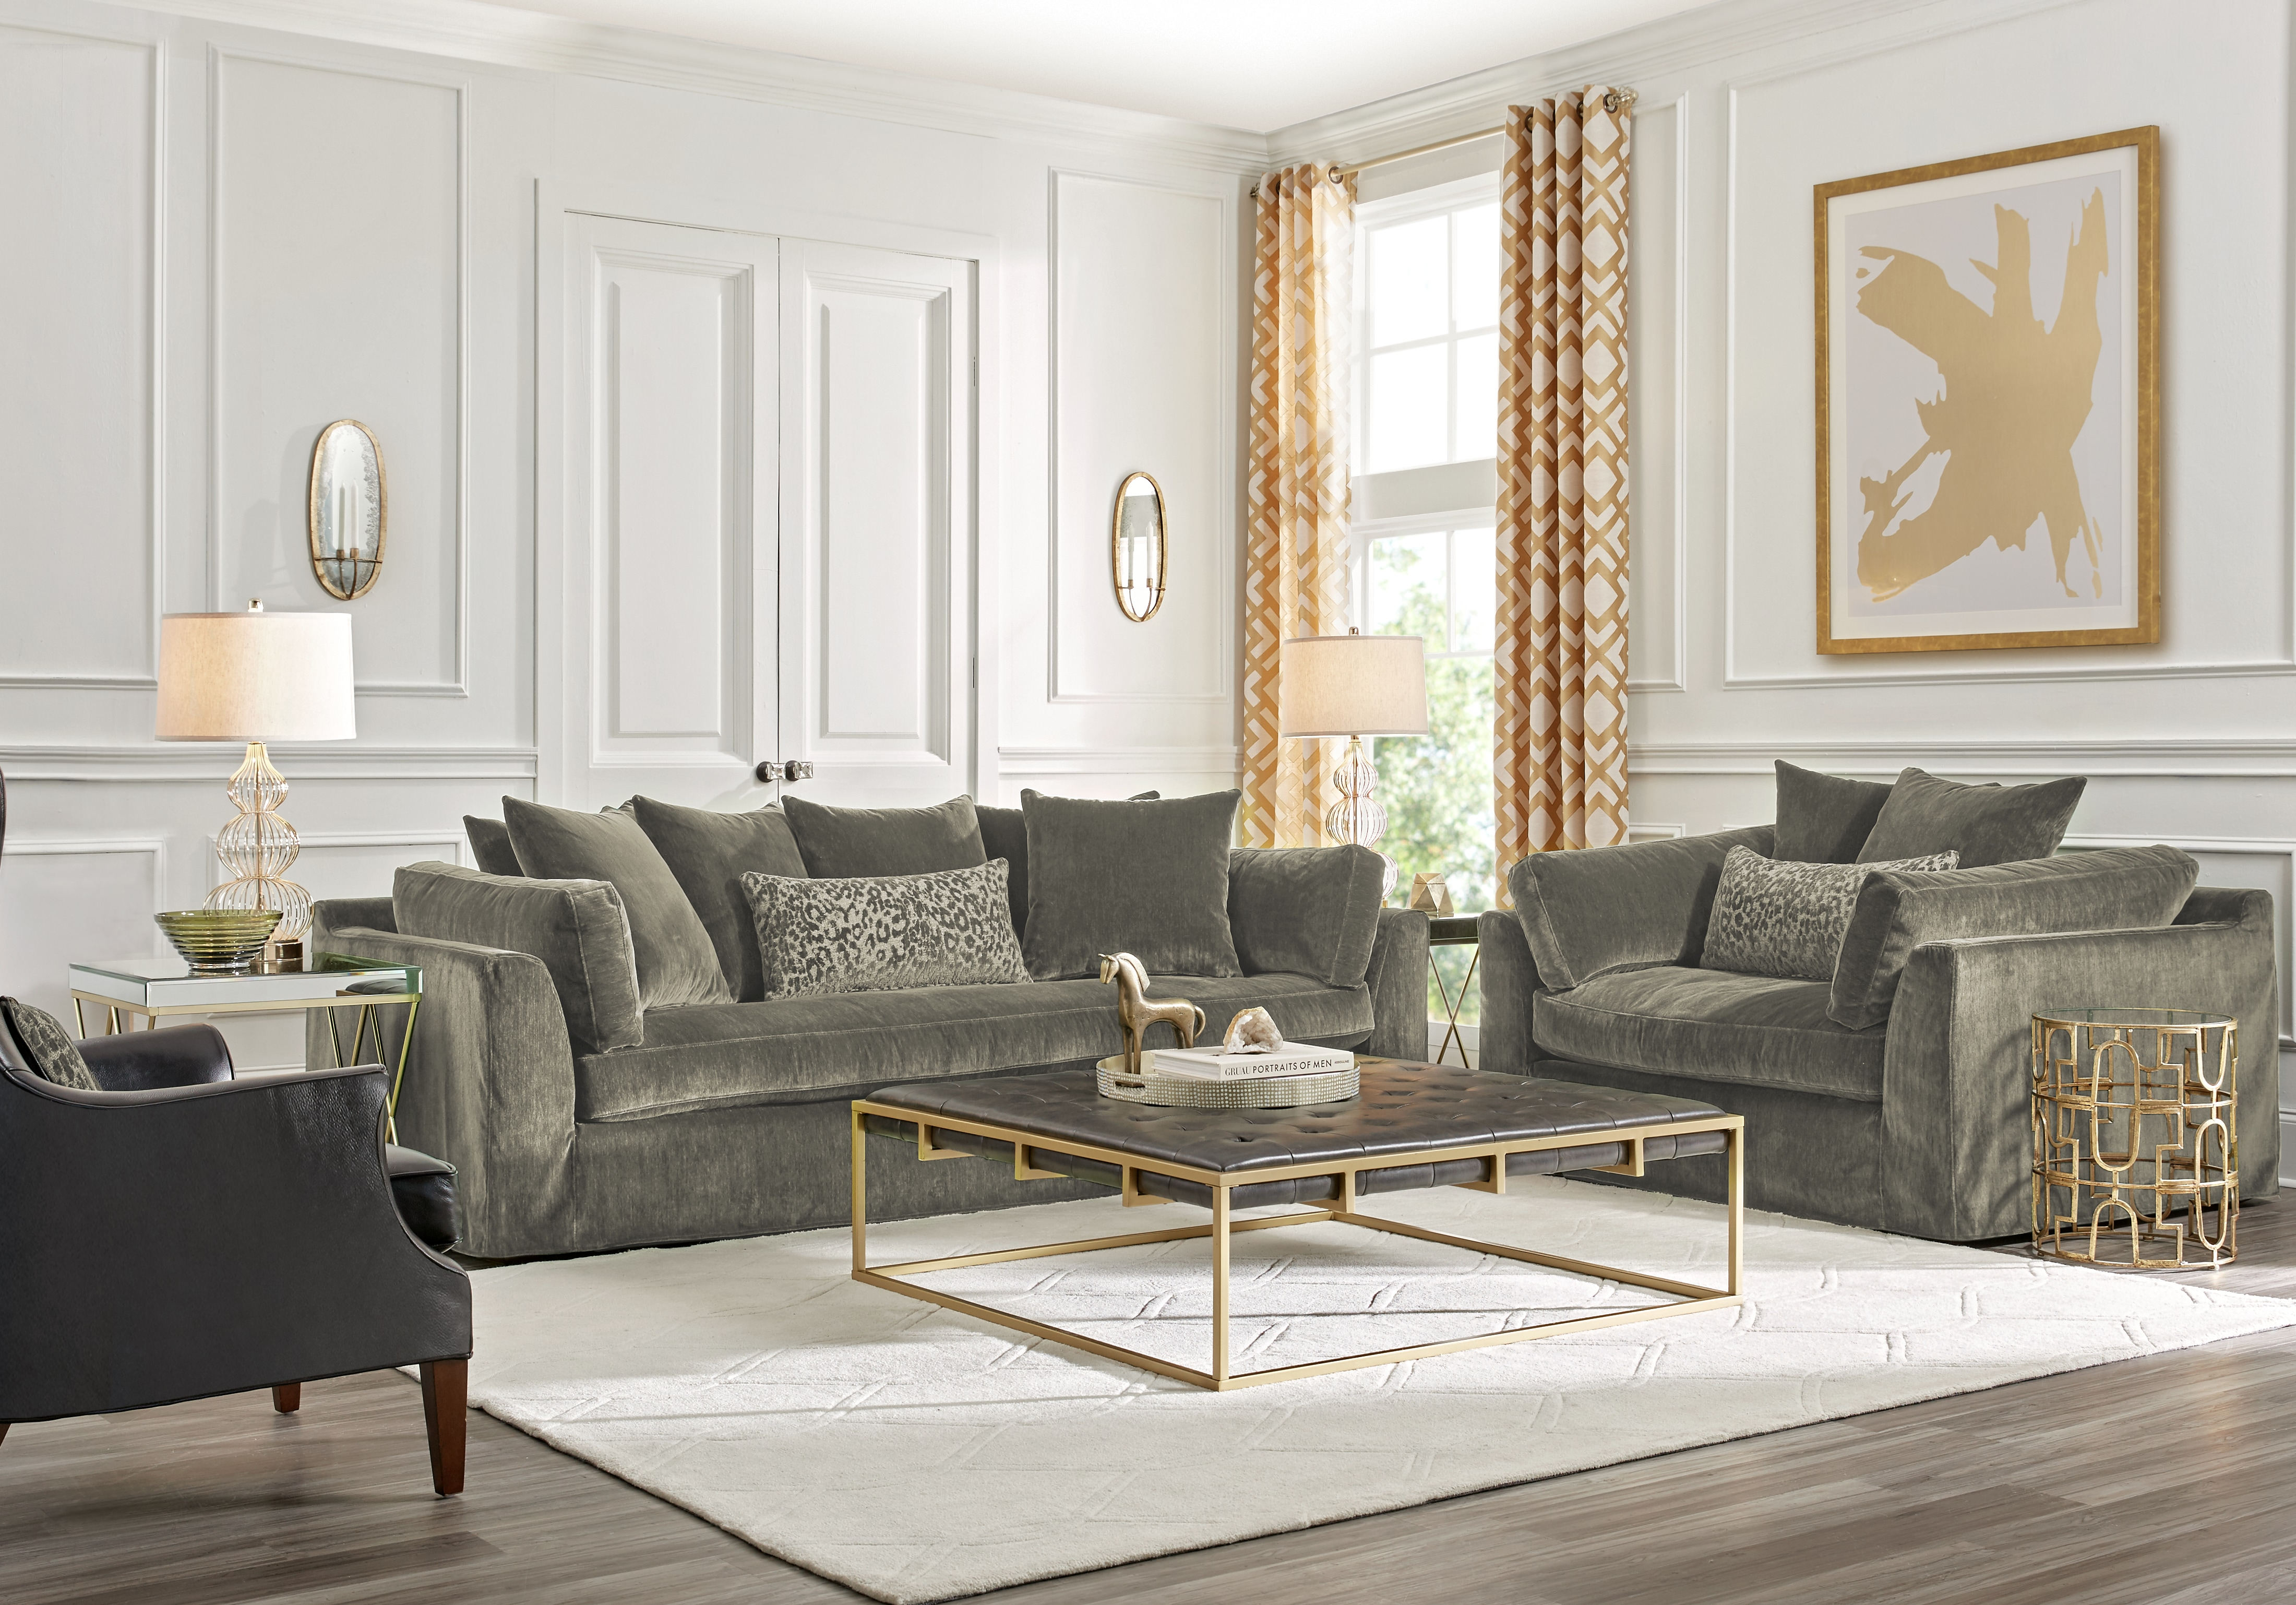 Raven Lane Gray 3 Pc Living Room – Living Room Sets (gray) With Raven Grey Tv Stands (View 17 of 30)